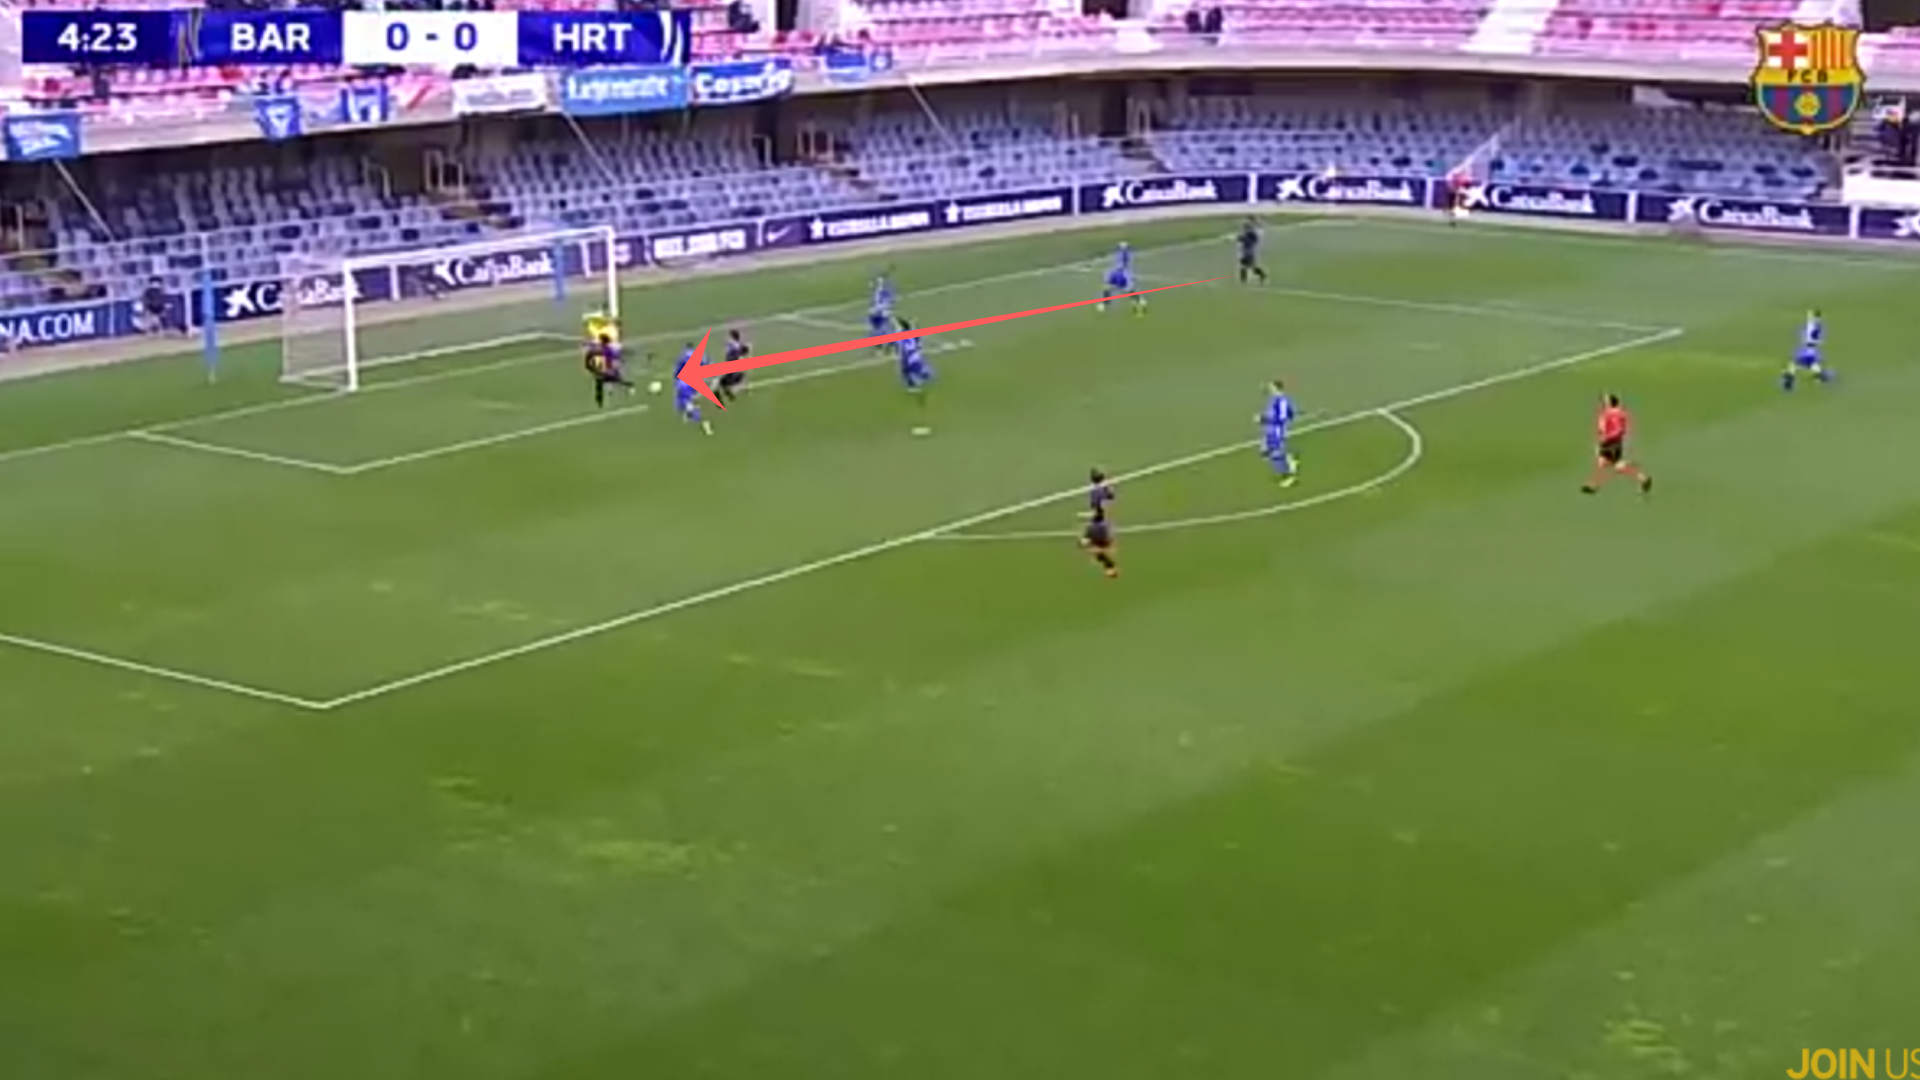 barcelona-hertha berlin-uefa youth league- tactical analysis-analysis